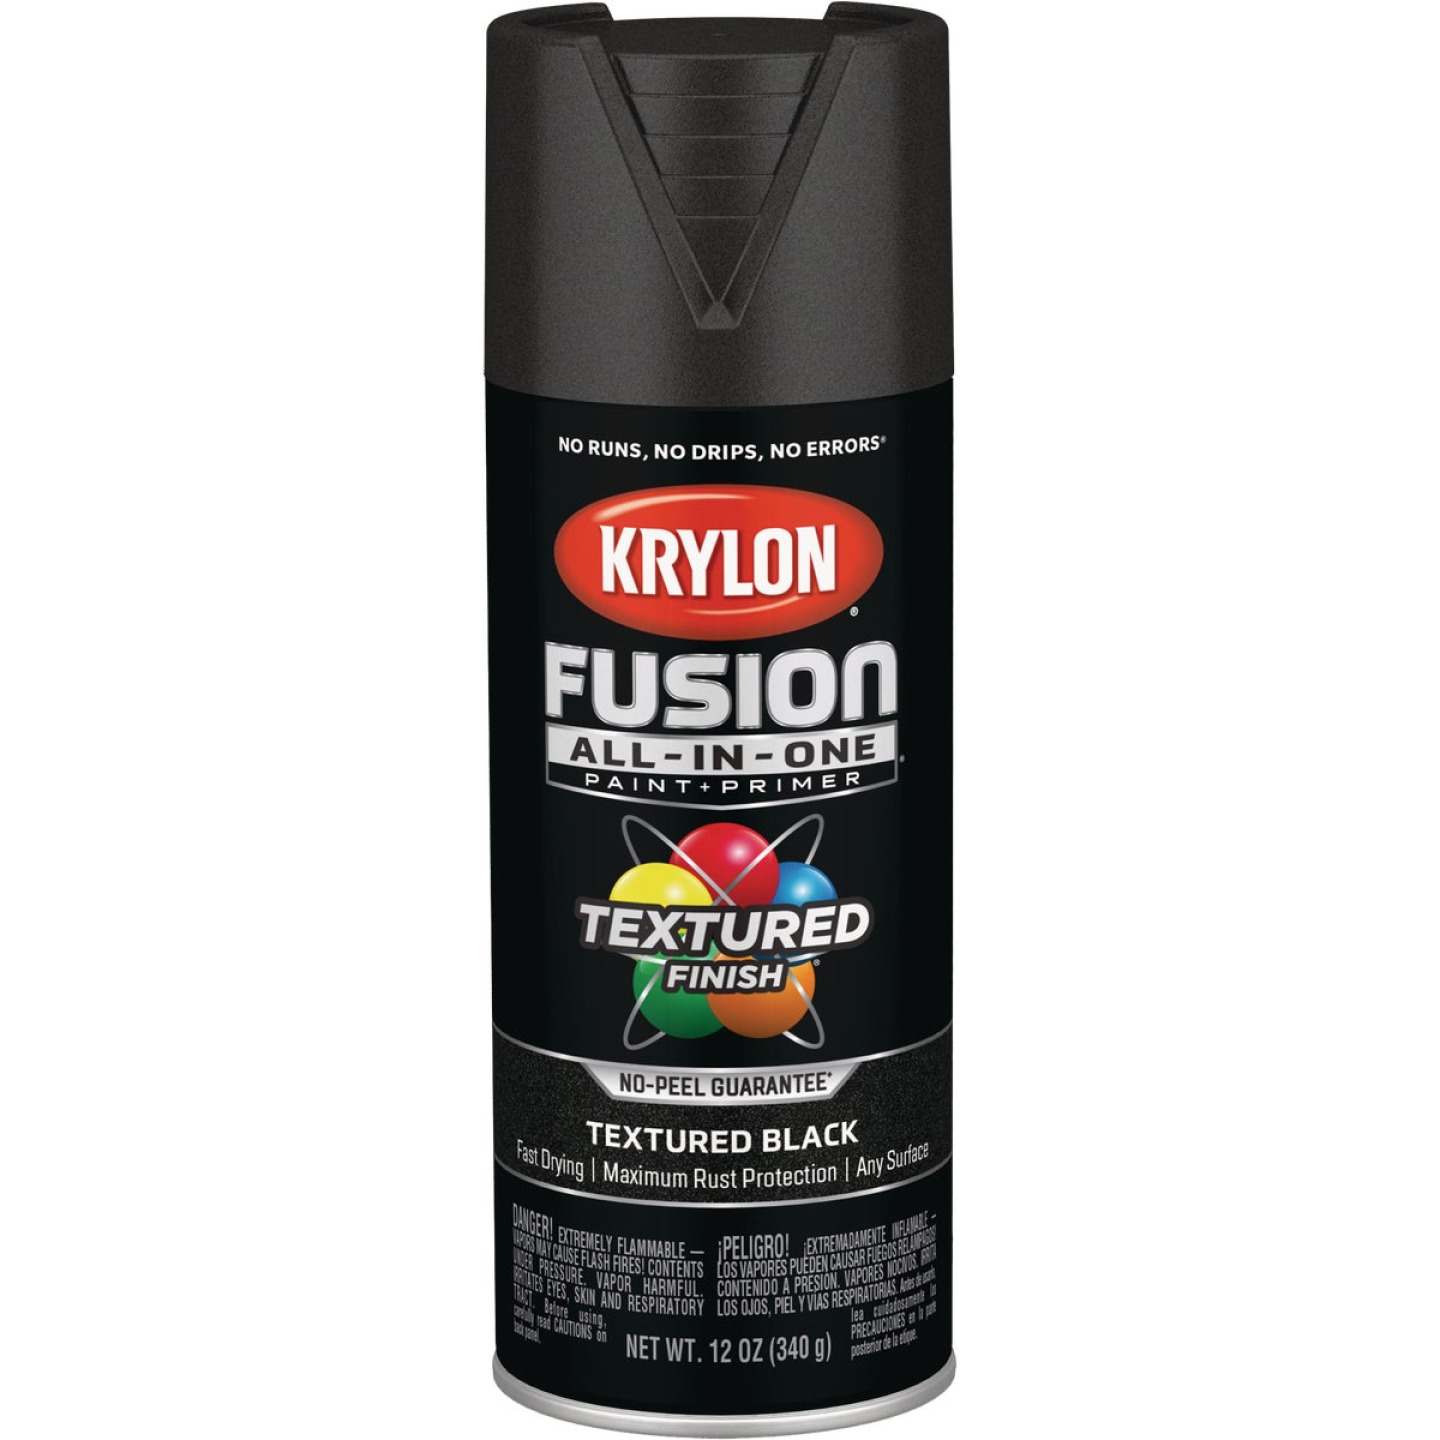 Krylon Fusion All-In-One Textured Spray Paint & Primer, Black Image 1